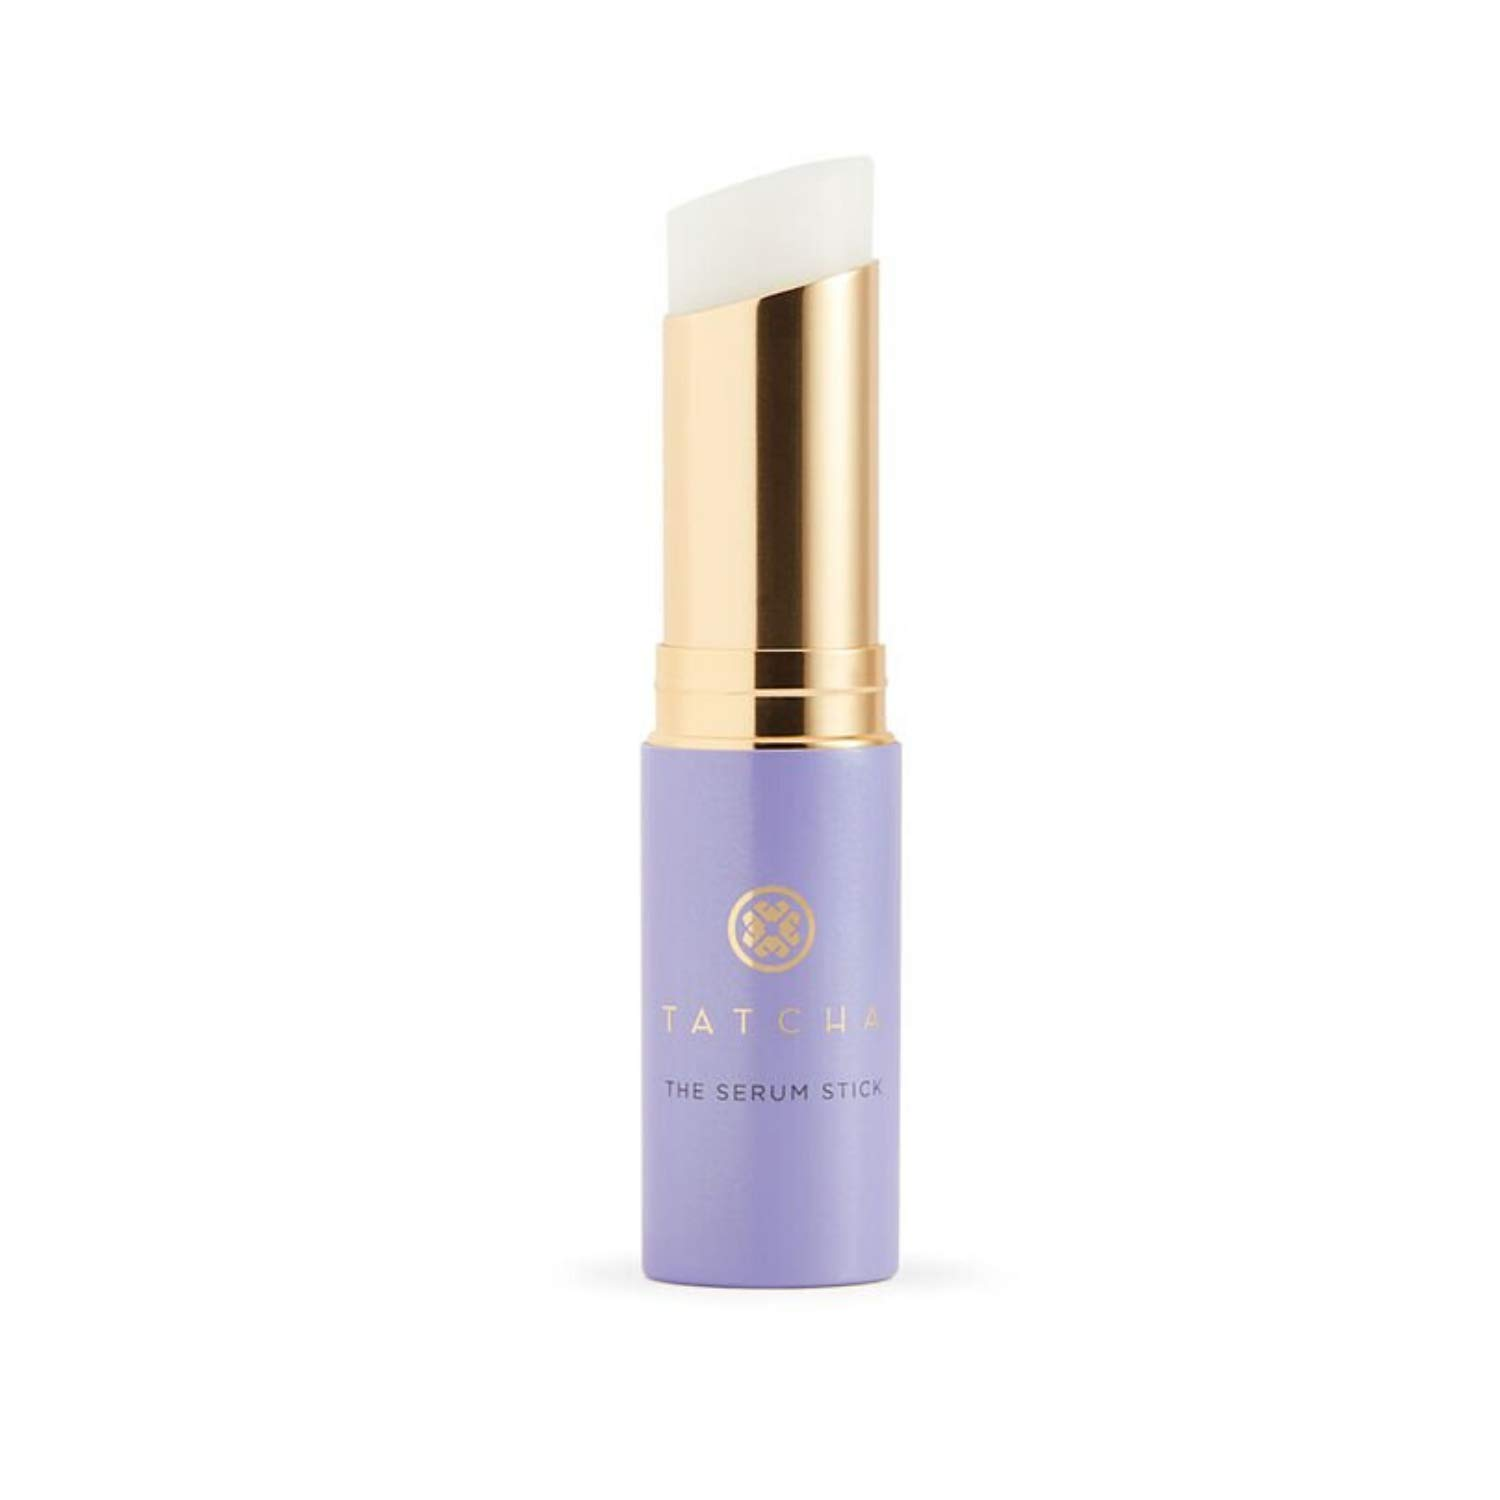 Tatcha The Serum Stick: Smooth Dry Fine Lines Instantly & Over Time, 8 G | 0.28 oz